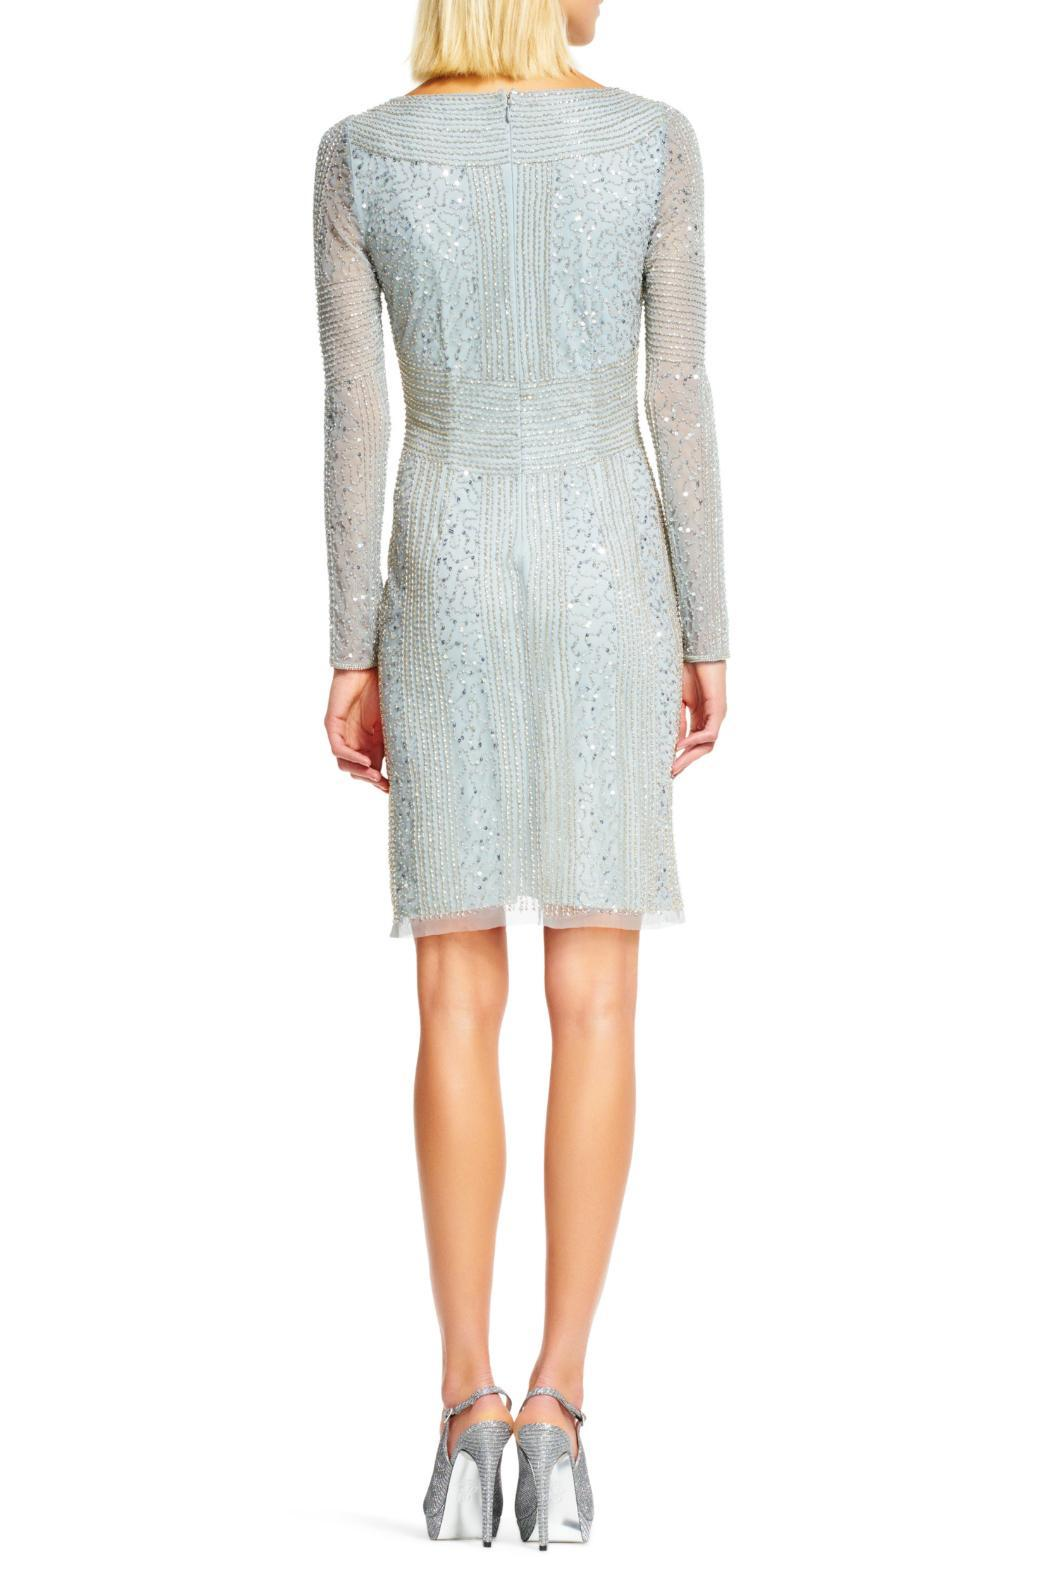 Adrianna Papell Long Sleeves Beaded Dress - Side Cropped Image